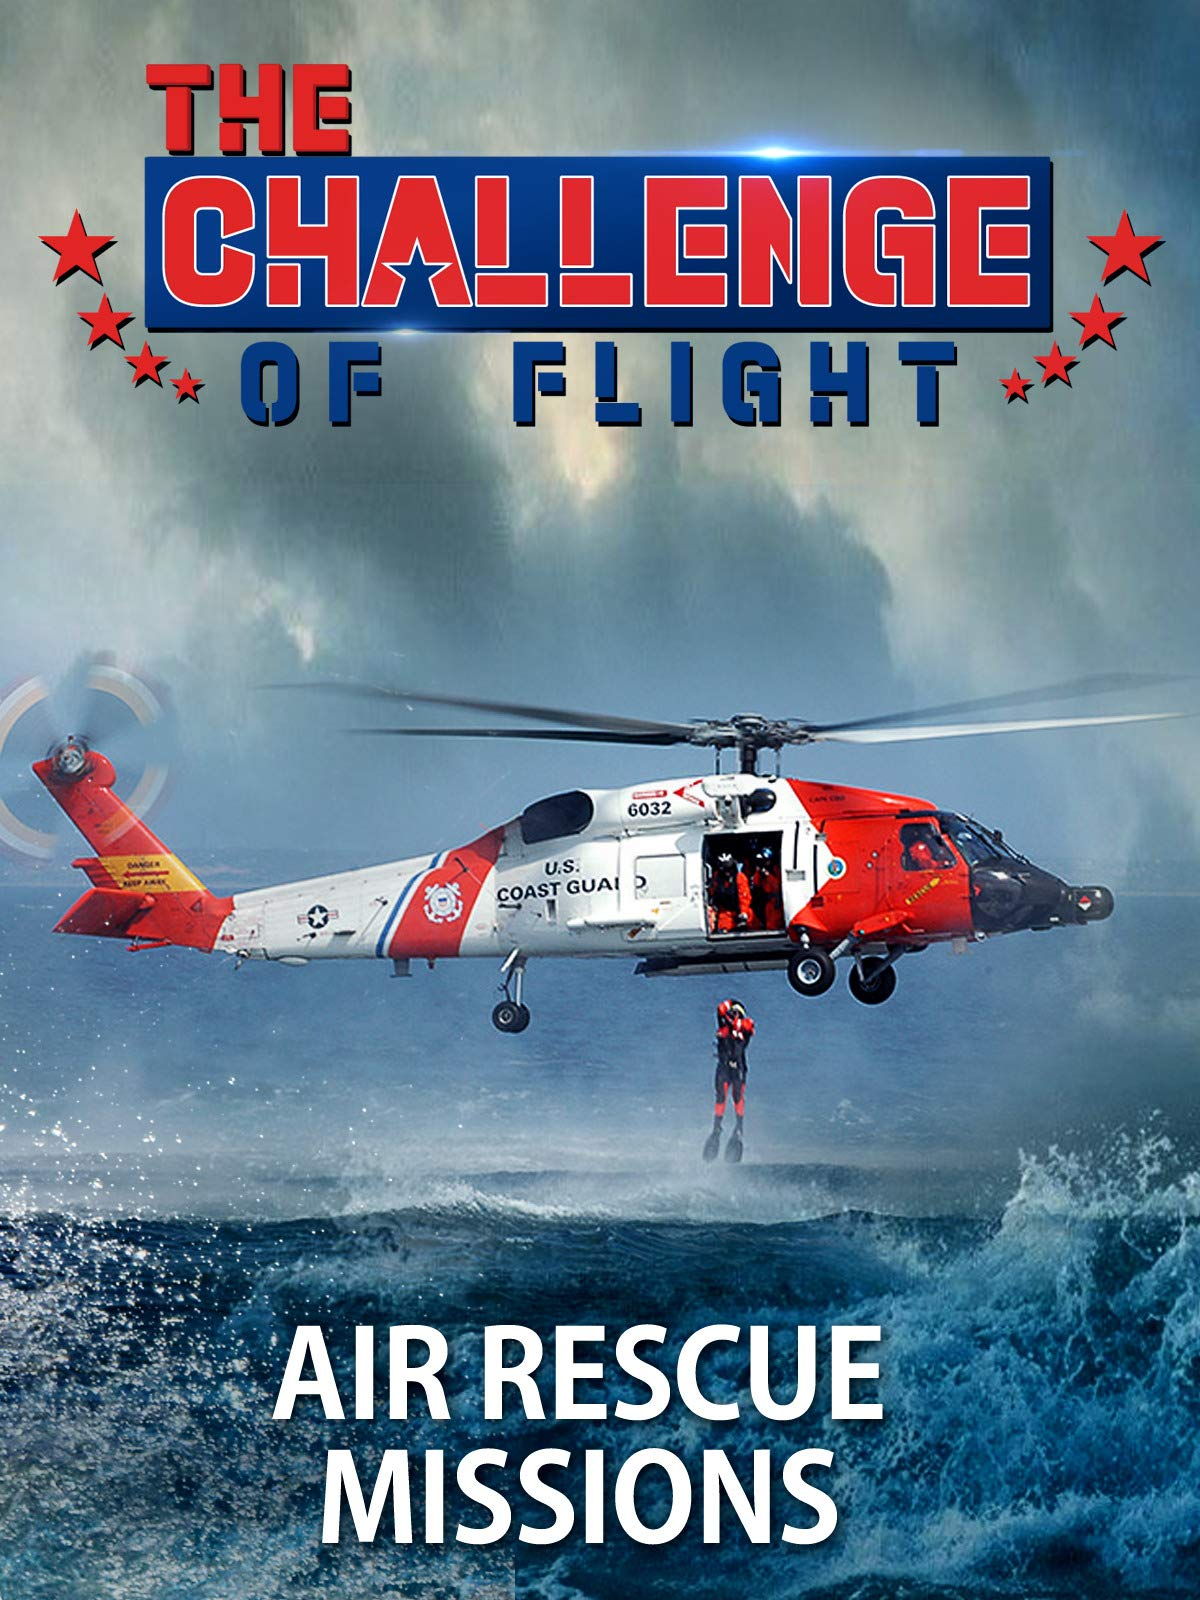 The Challenge of Flight - Air Rescue Missions